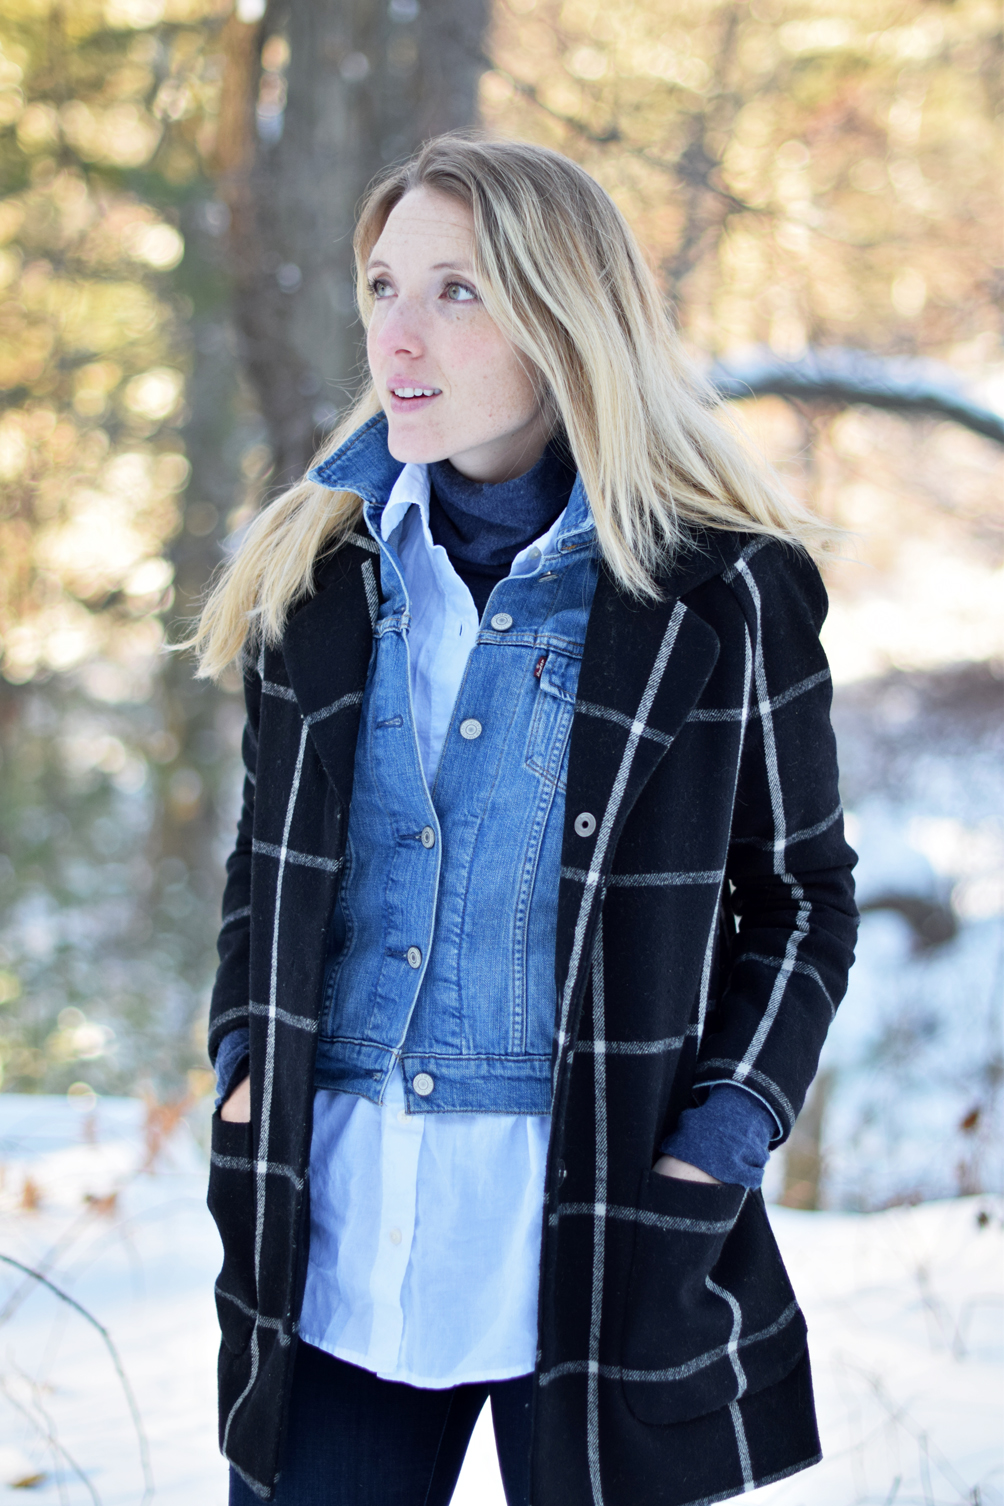 layered turtleneck with a button-down shirt, jean jacket, checked coat